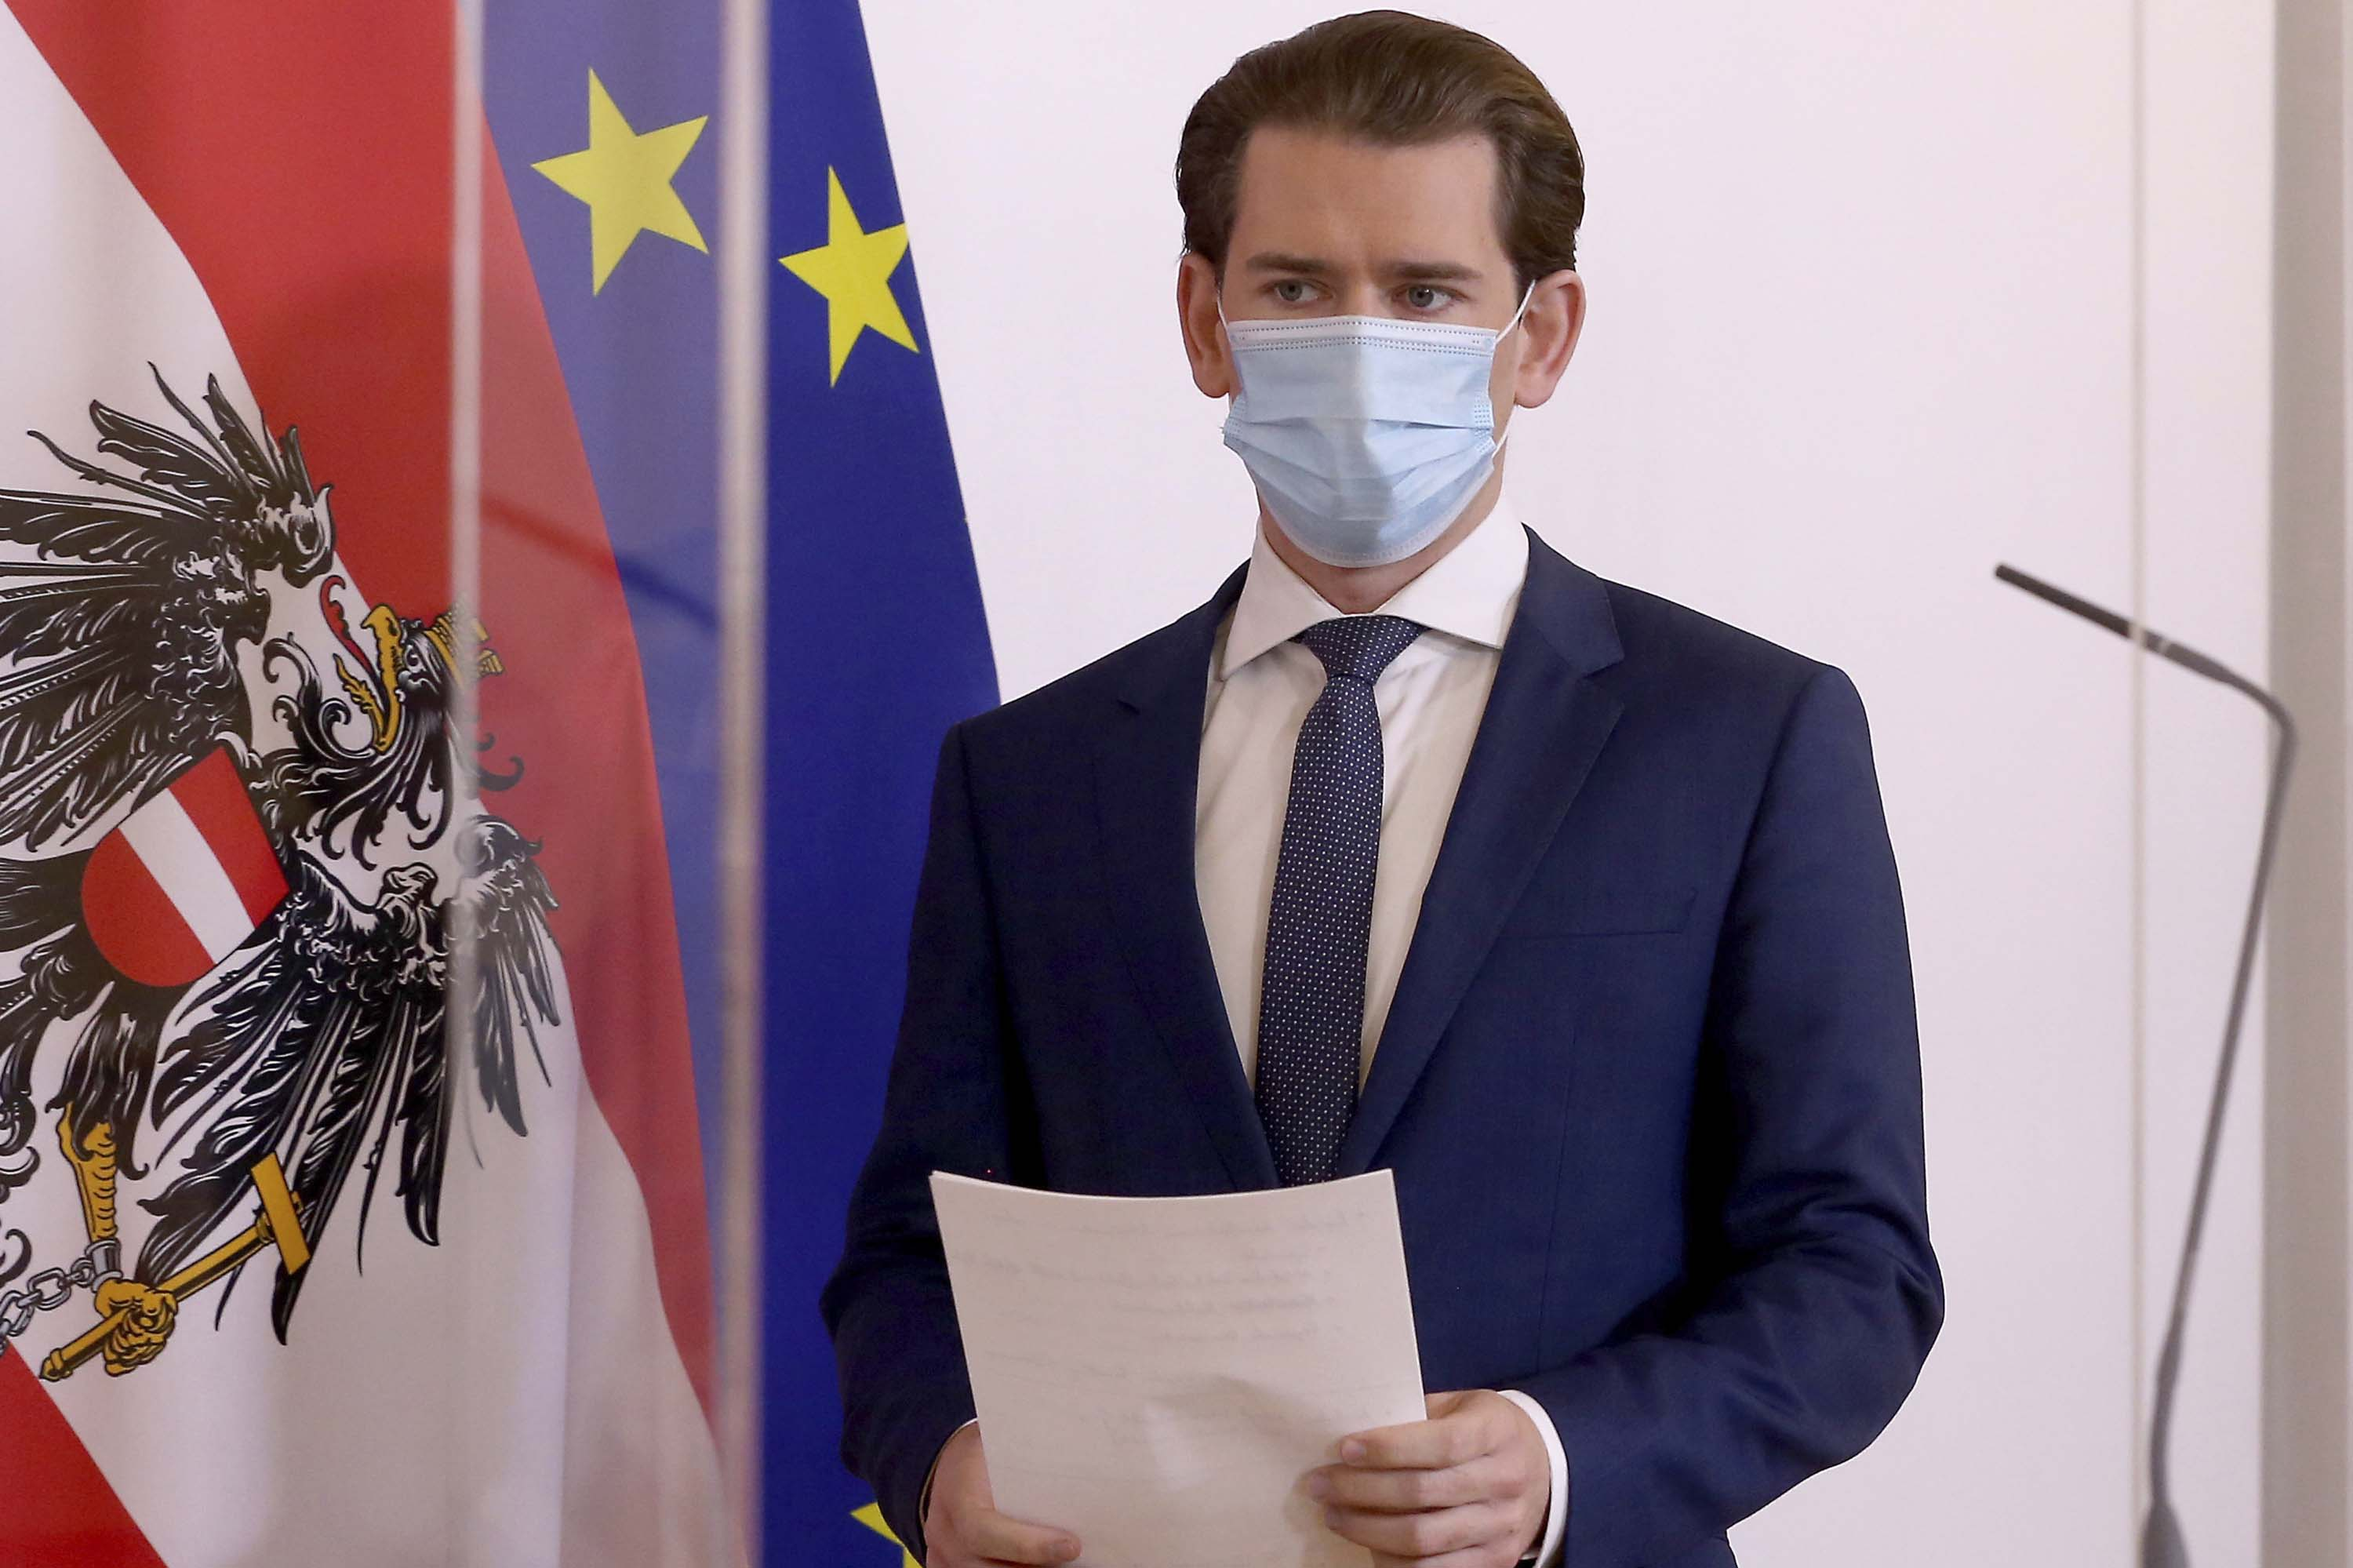 Austrian Chancellor Sebastian Kurz is pictured arriving for a press conference in Vienna, Austria, on October 19.